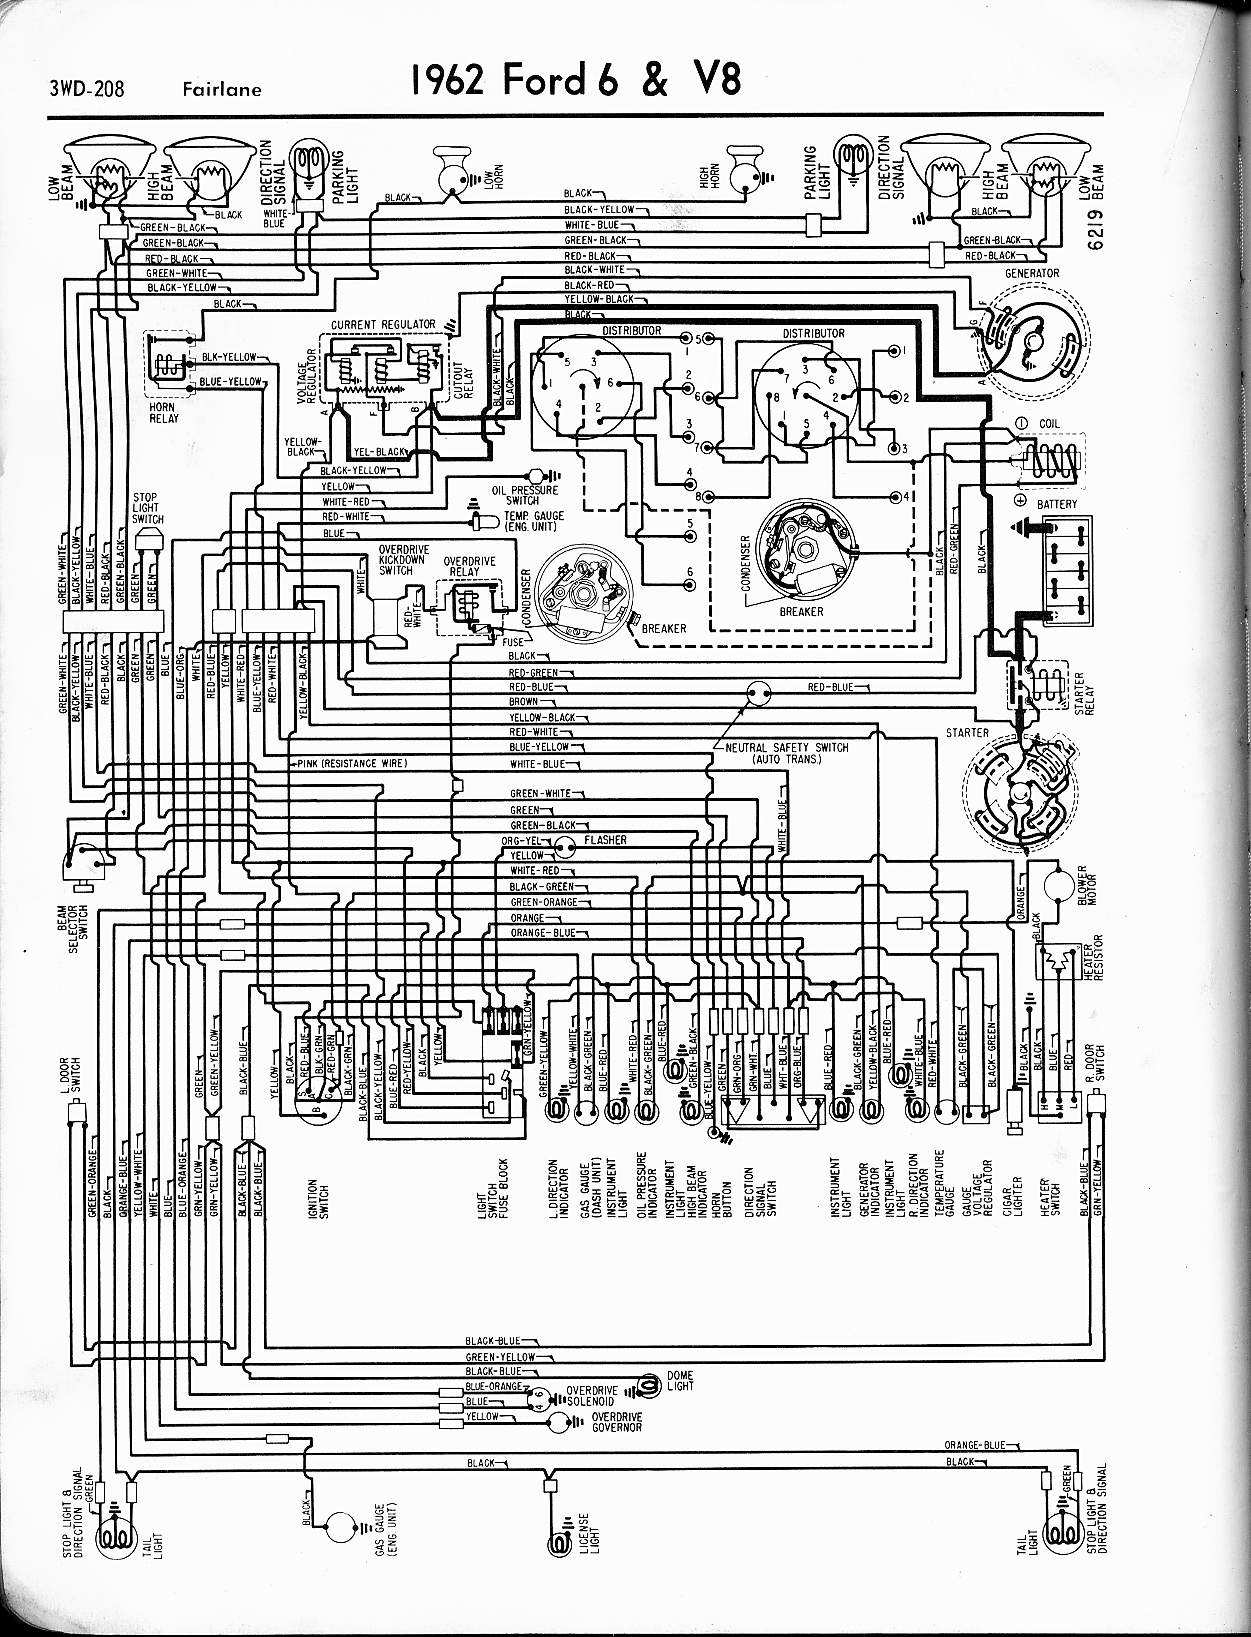 1956 Ford Fairlane Wiring Diagram Archive Of Automotive Wagon Car 57 65 Diagrams Rh Oldcarmanualproject Com Turn Signal